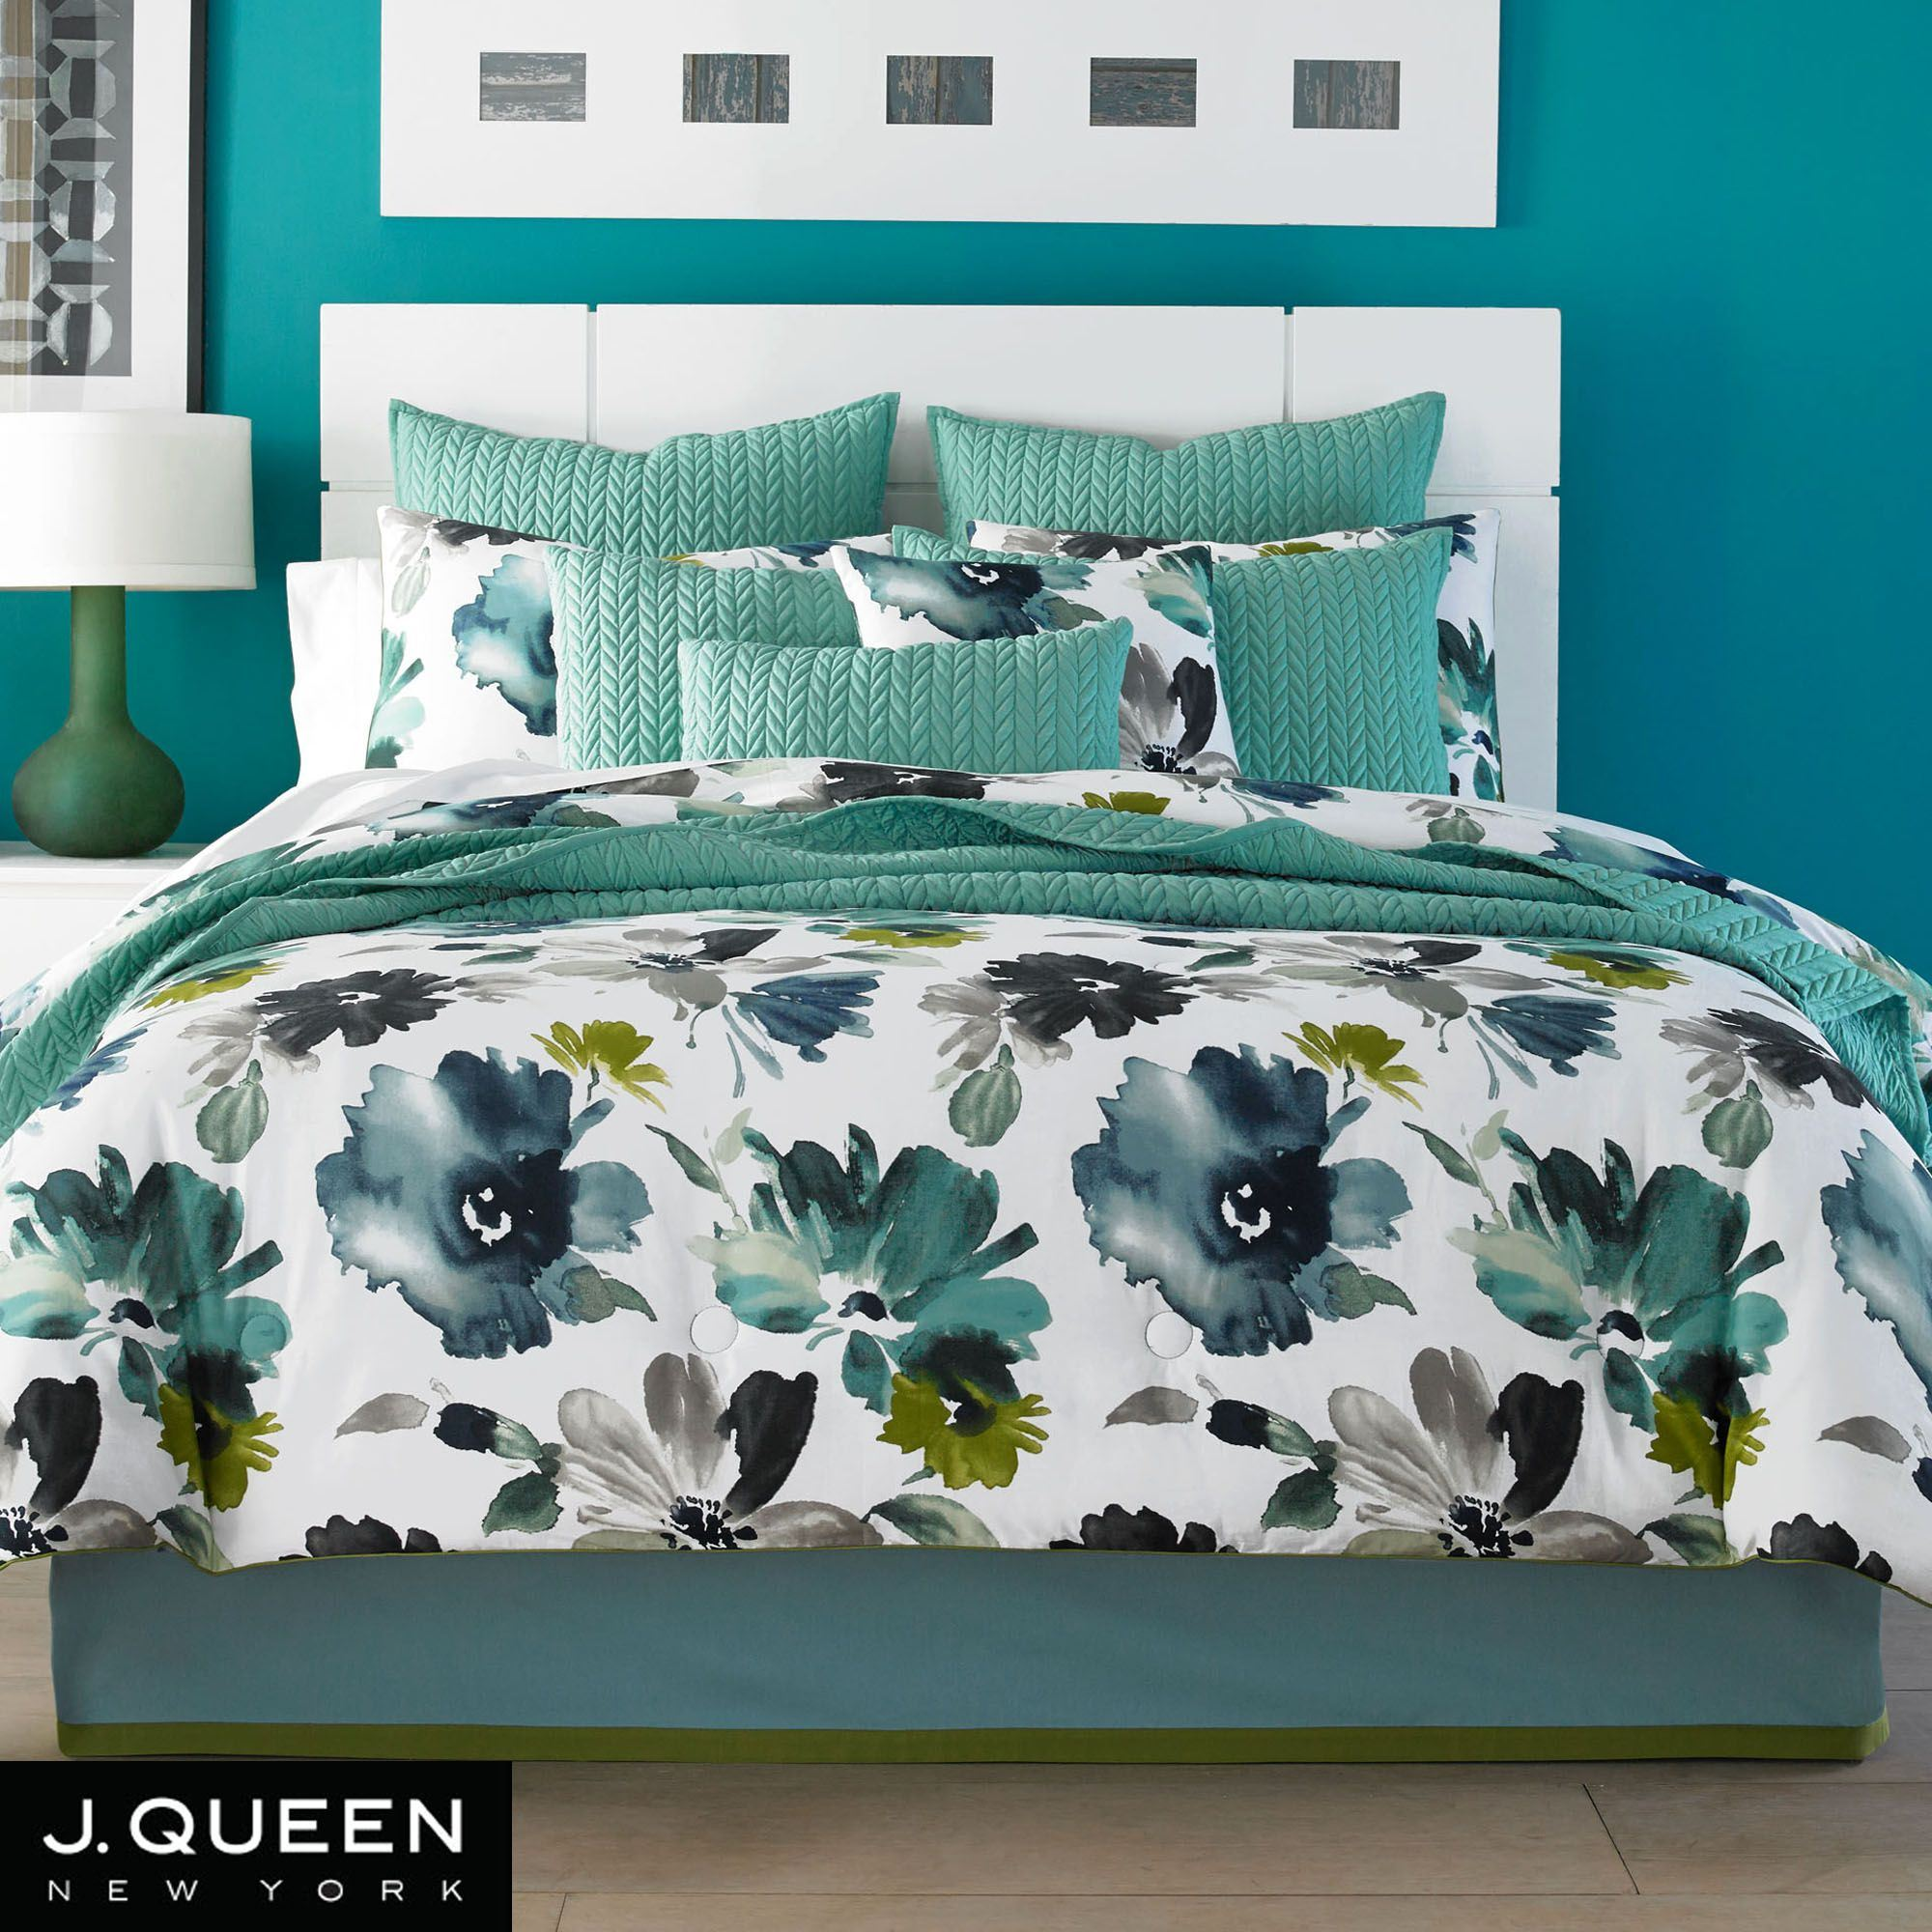 Midori Floral Comforter Bedding From J By J Queen New York